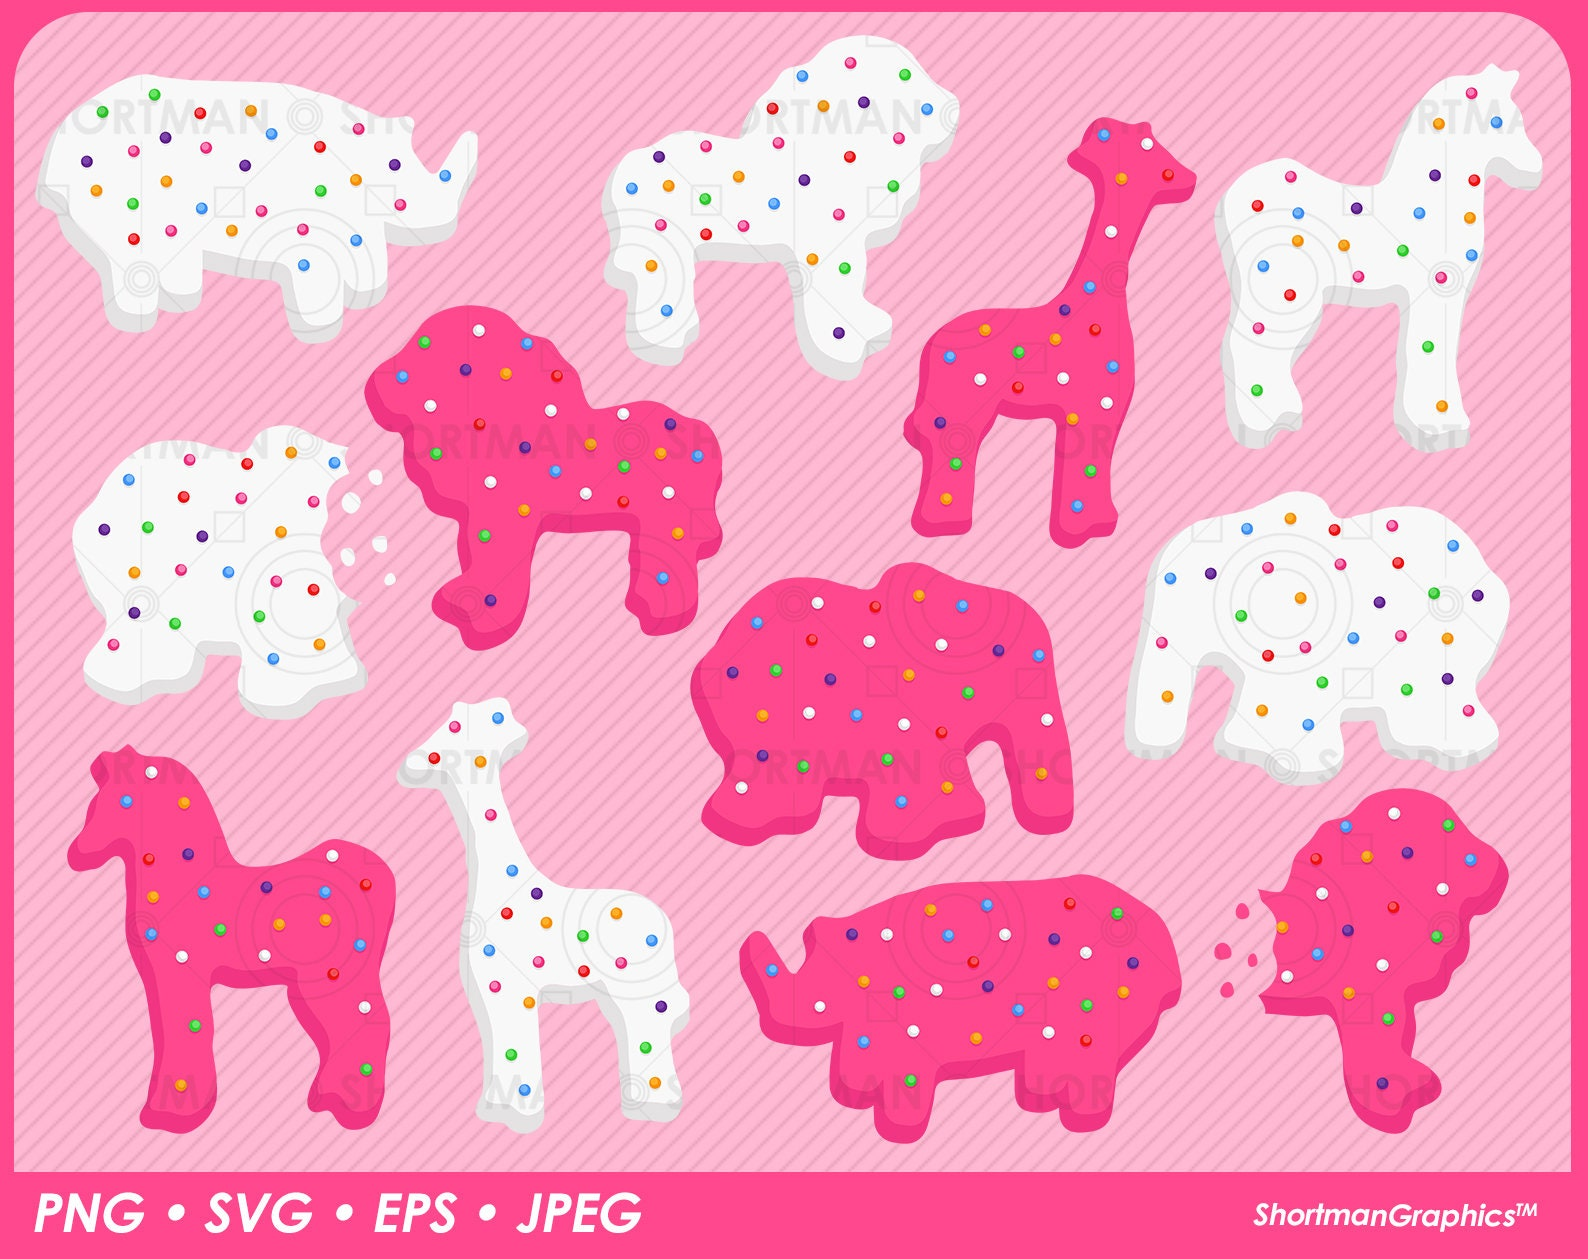 Circus Animal Crackers Clipart Animal Cookies Svg Png Etsy